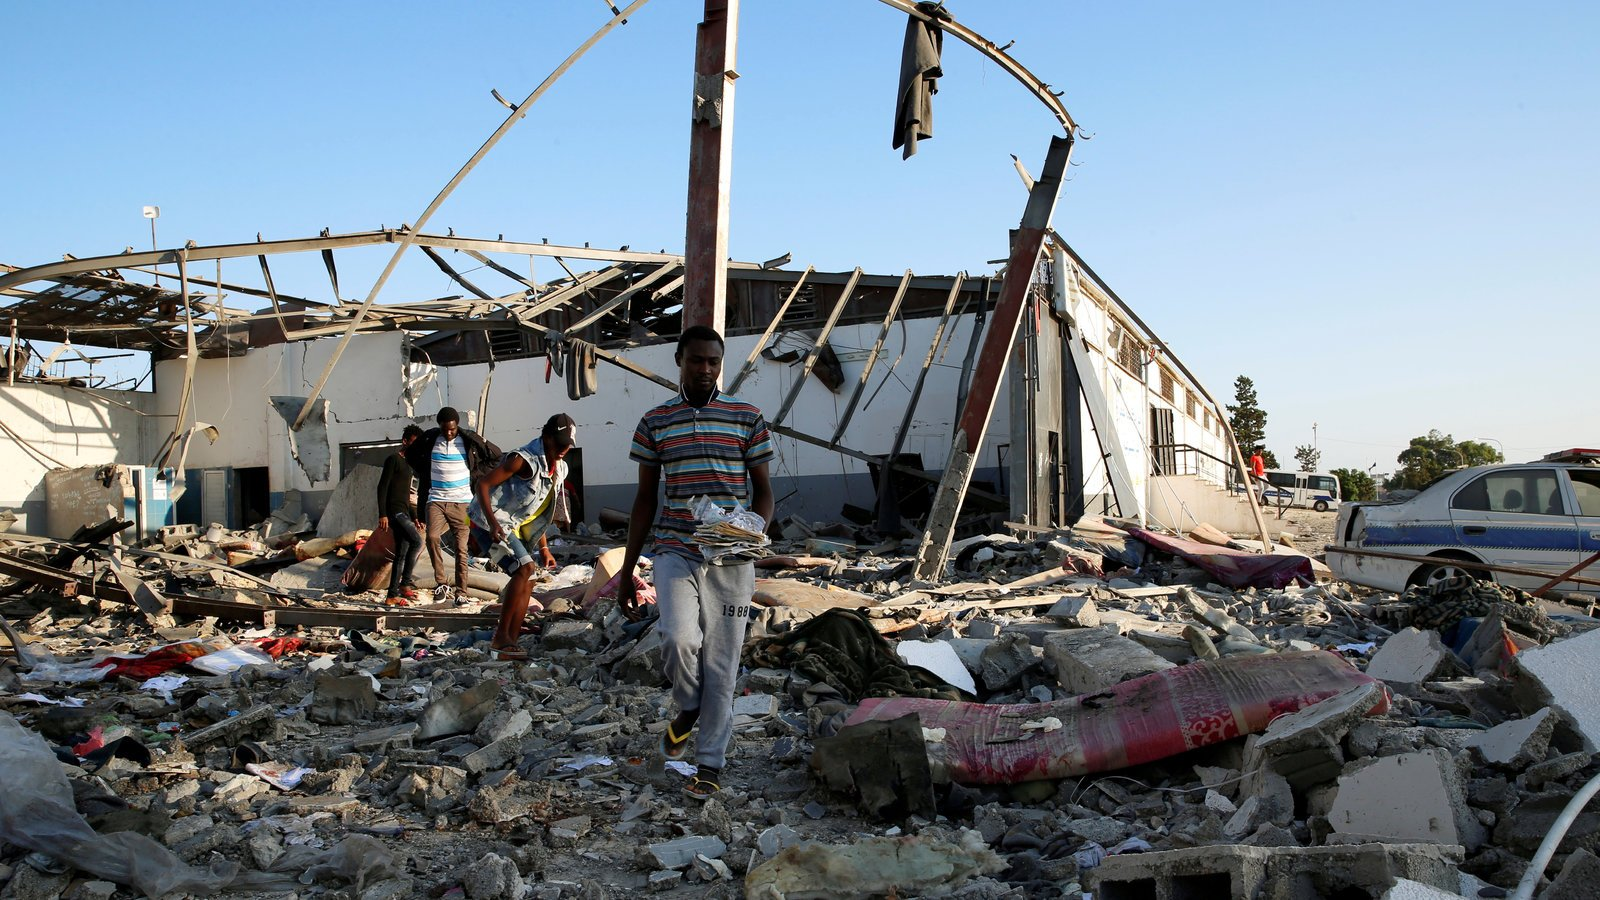 Migrants in the rubble of a detention center in Tajoura, Libya, after it was hit by an airstrike that killed dozens of people.